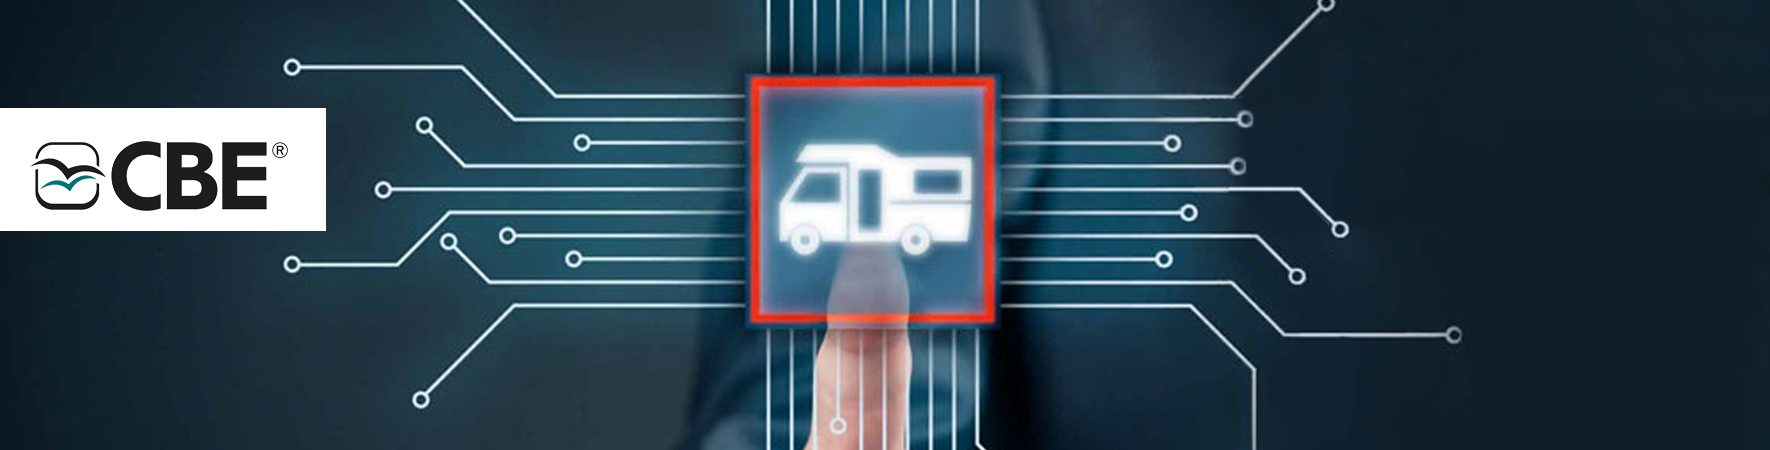 CBE - Electronics for motorhomes and caravans